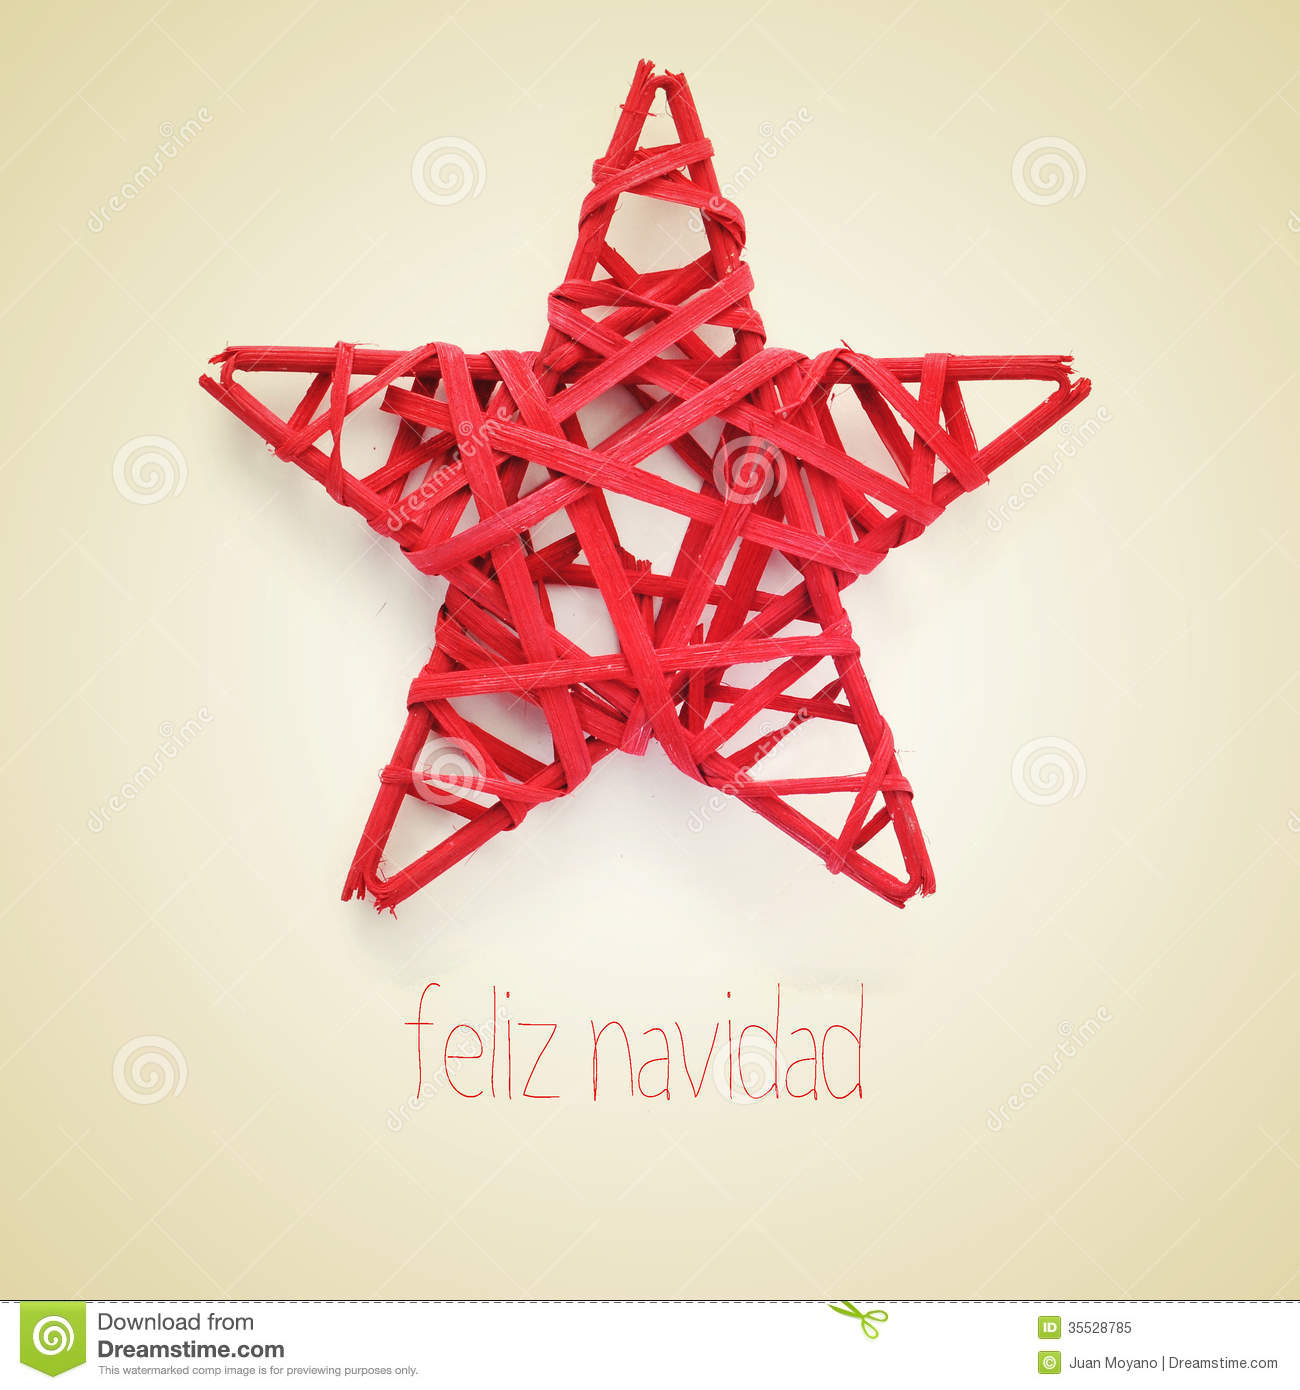 Merry En: Feliz Navidad, Merry Christmas In Spanish Stock Image